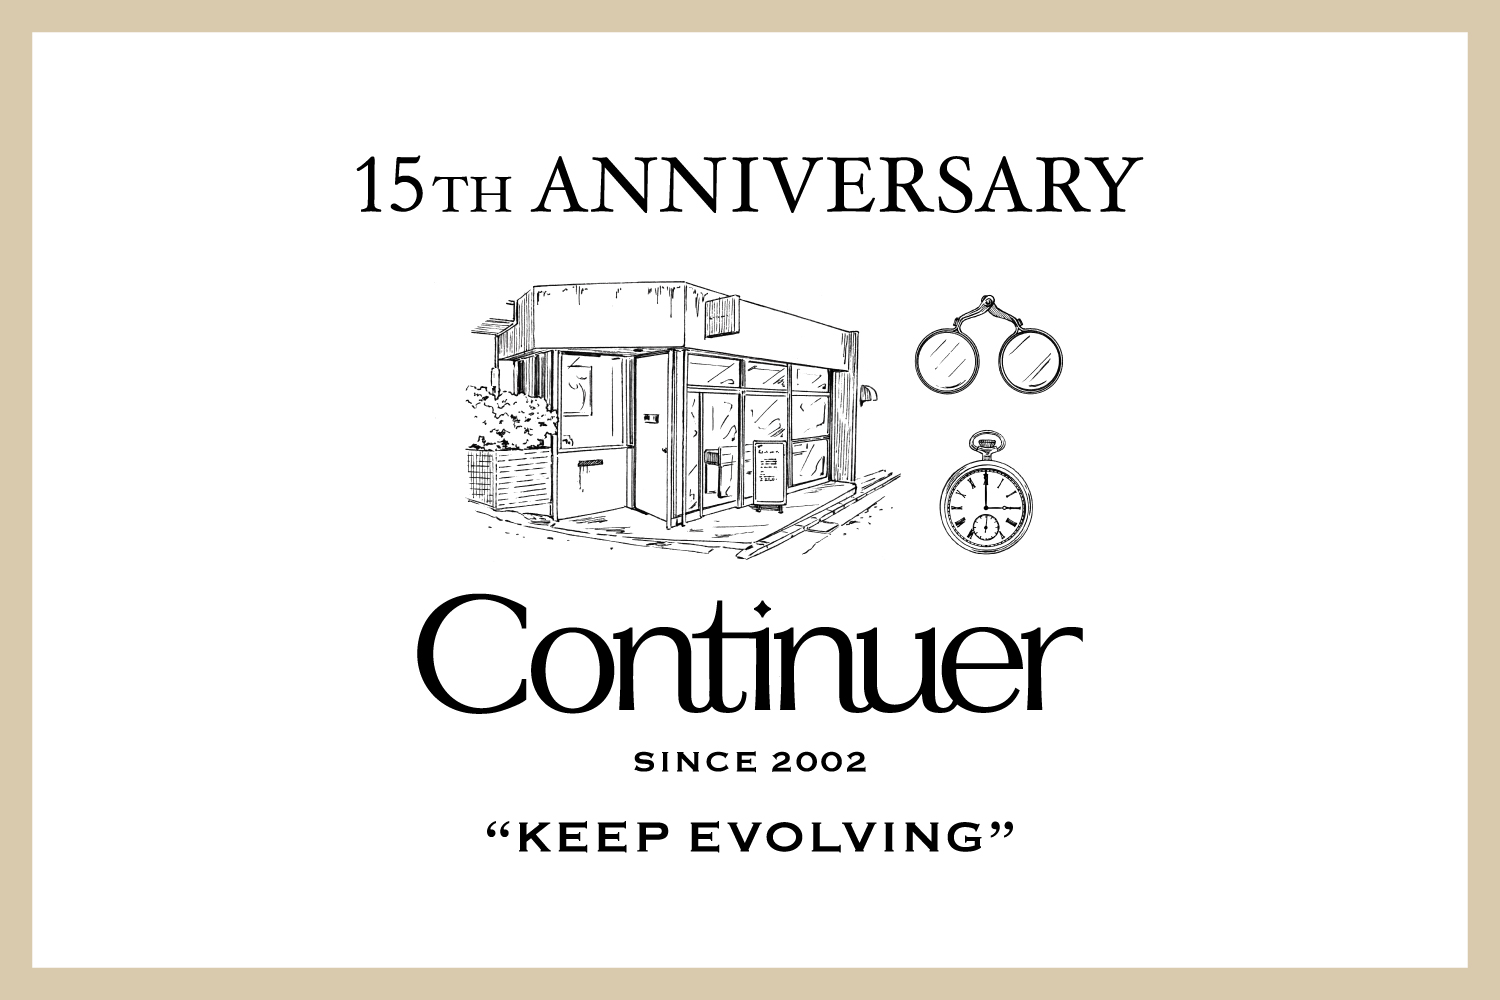 Continuer 15th ANNIVERSARY FAIR